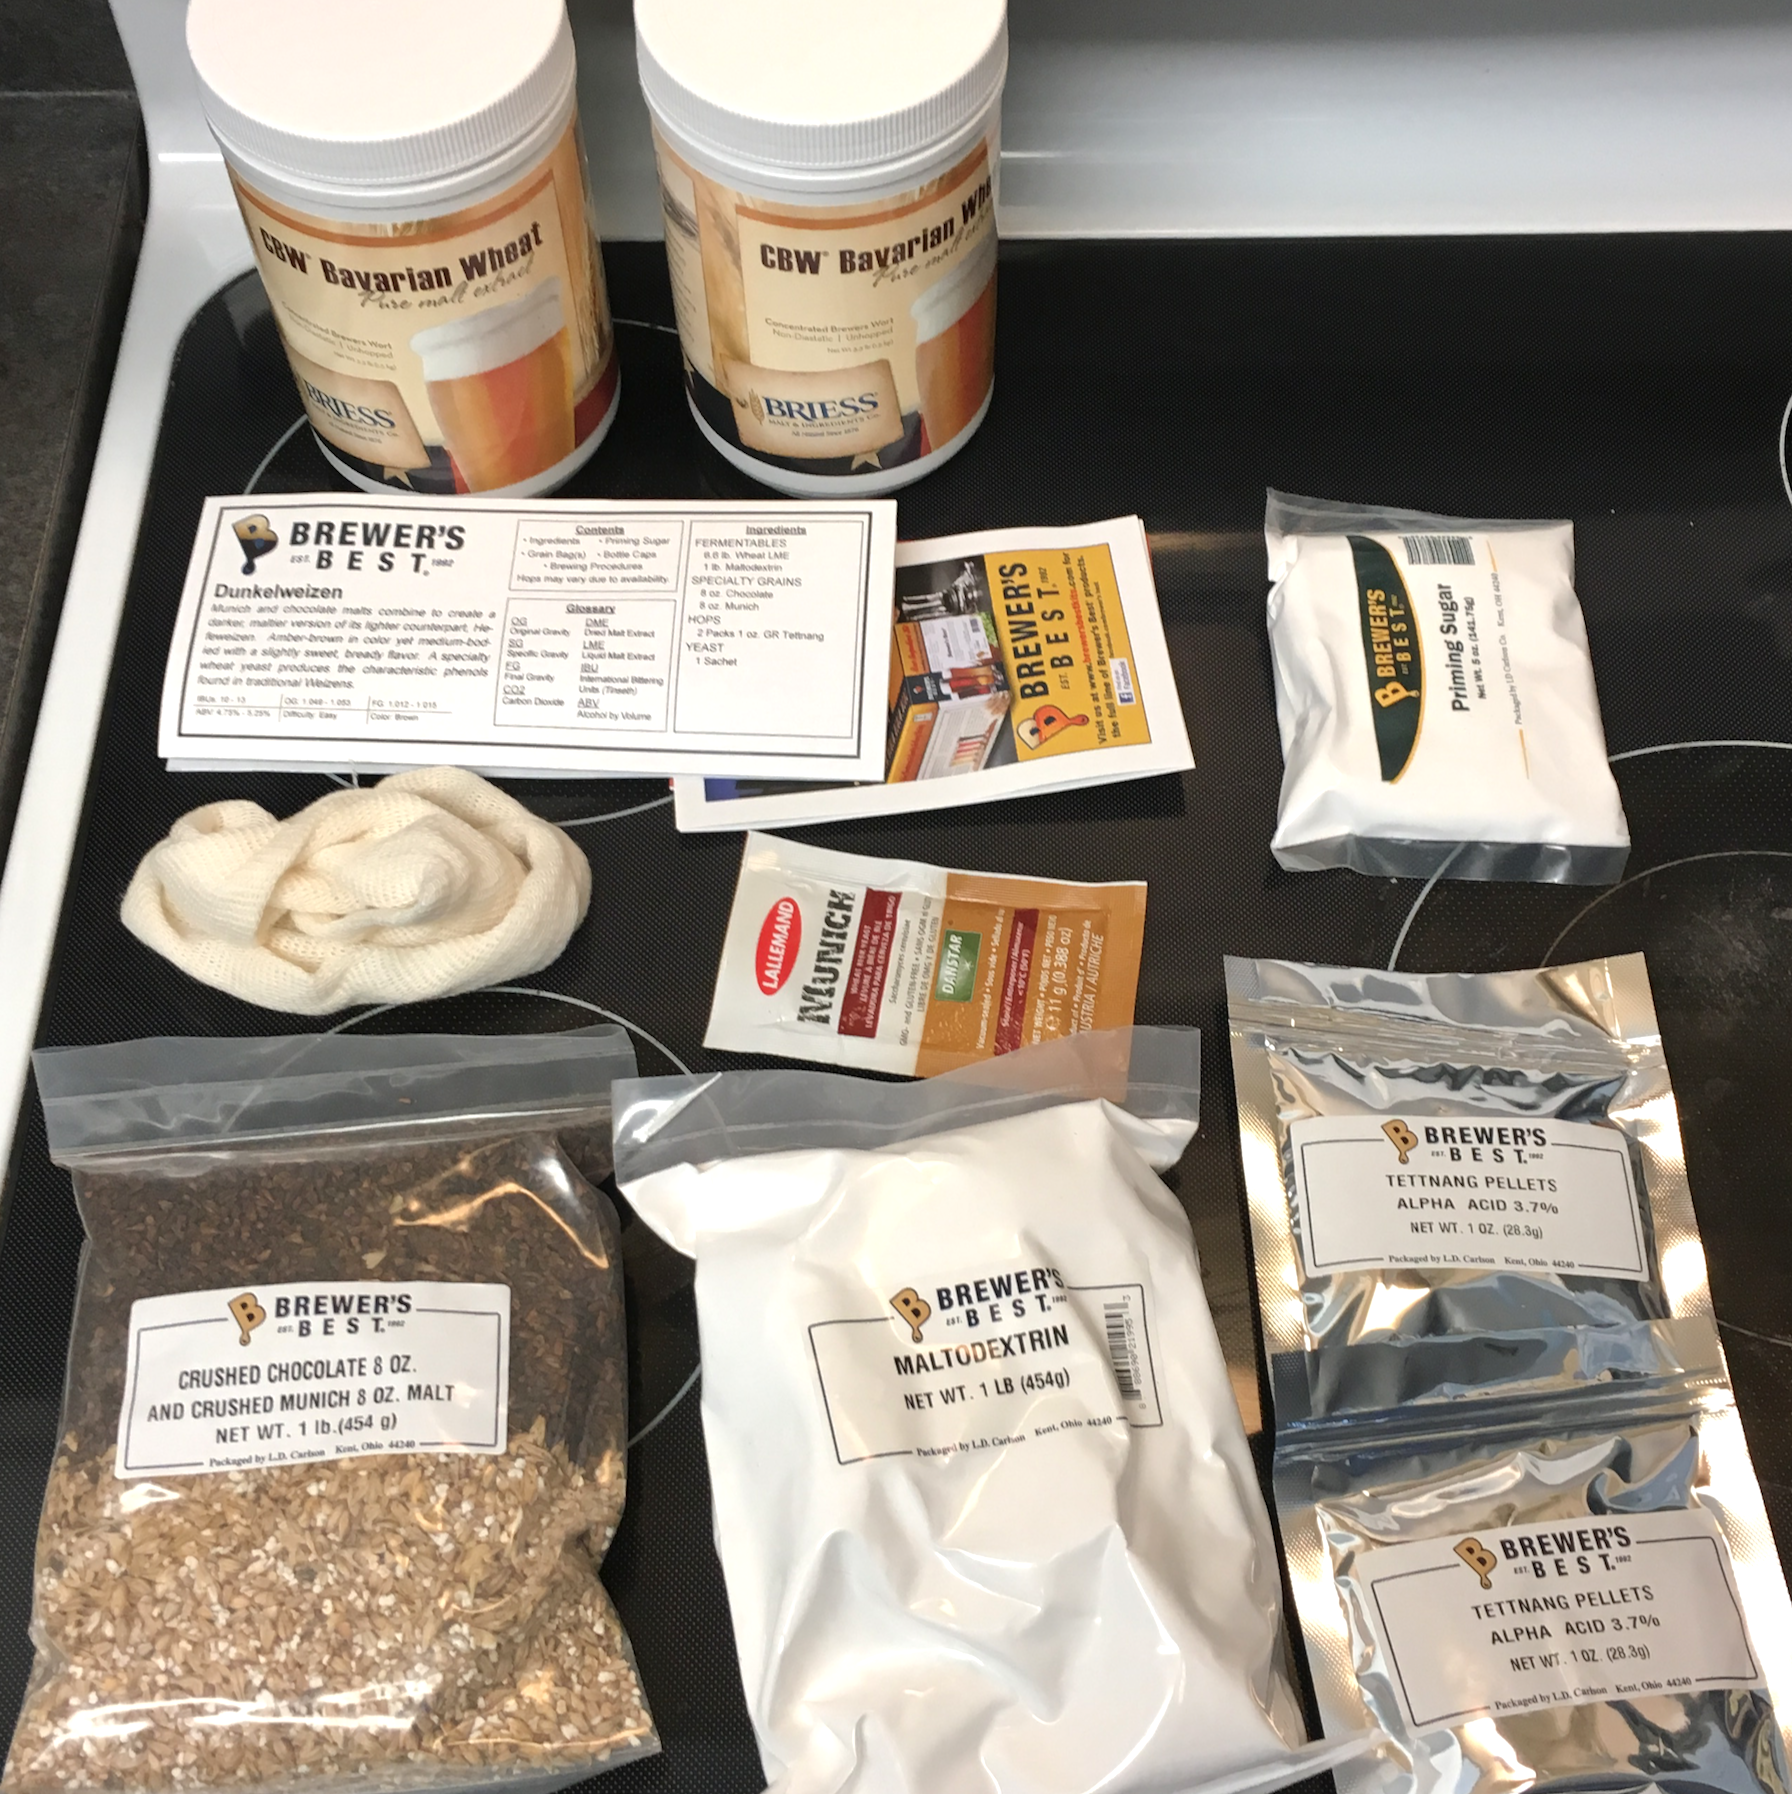 Ingredients from a Brewer's Best dunkelweizen kit.